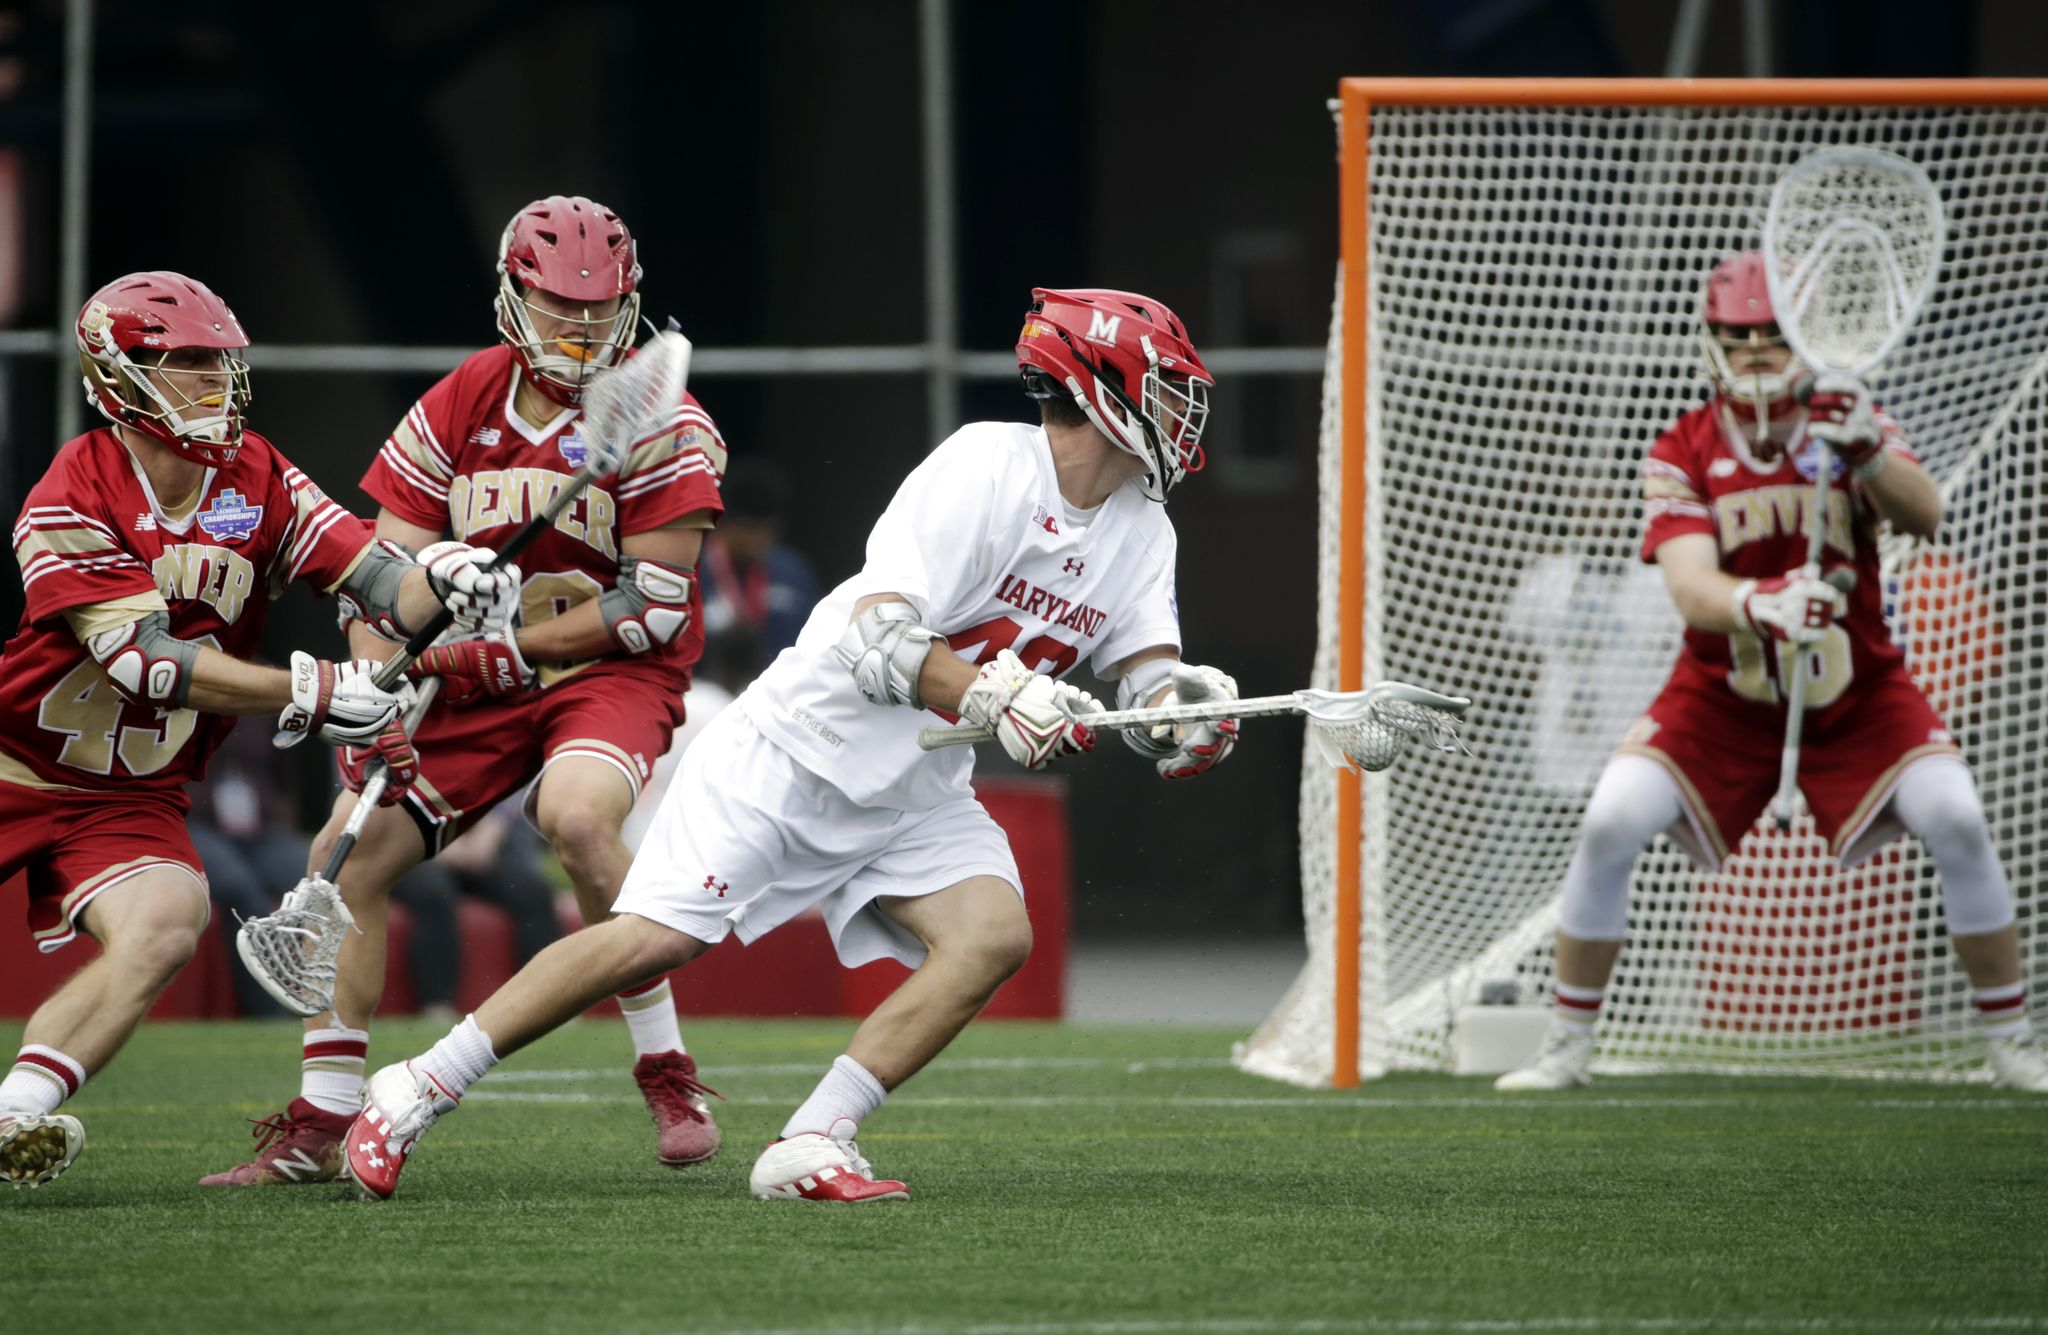 Ncaa_maryland_denver_lacrosse_52467.jpg-a2be3_s2048x1335